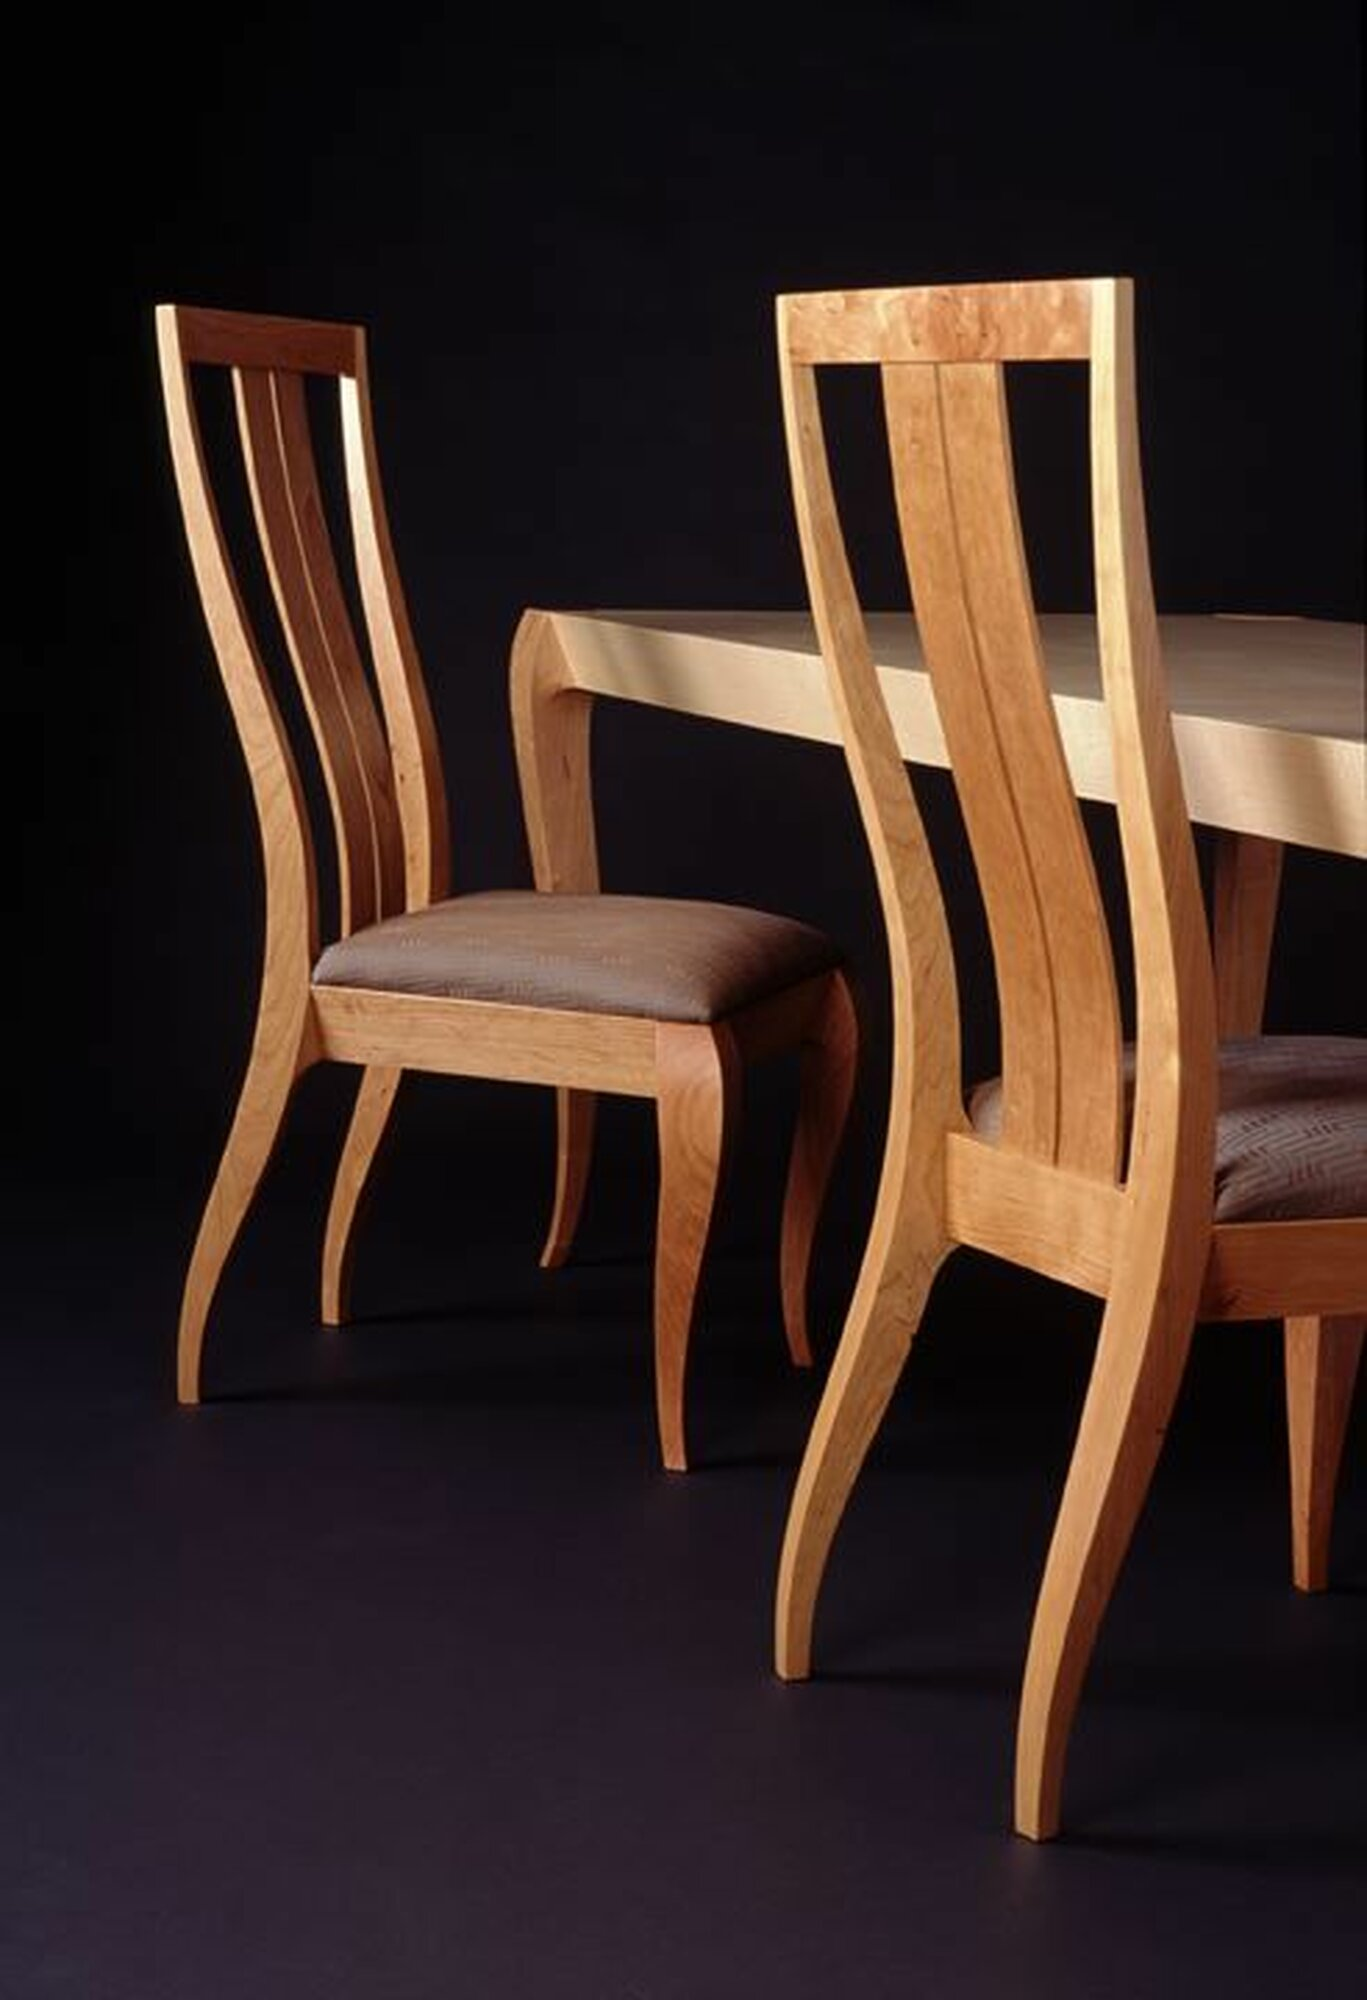 Gazelle Chairs and Gazelle Dining Table